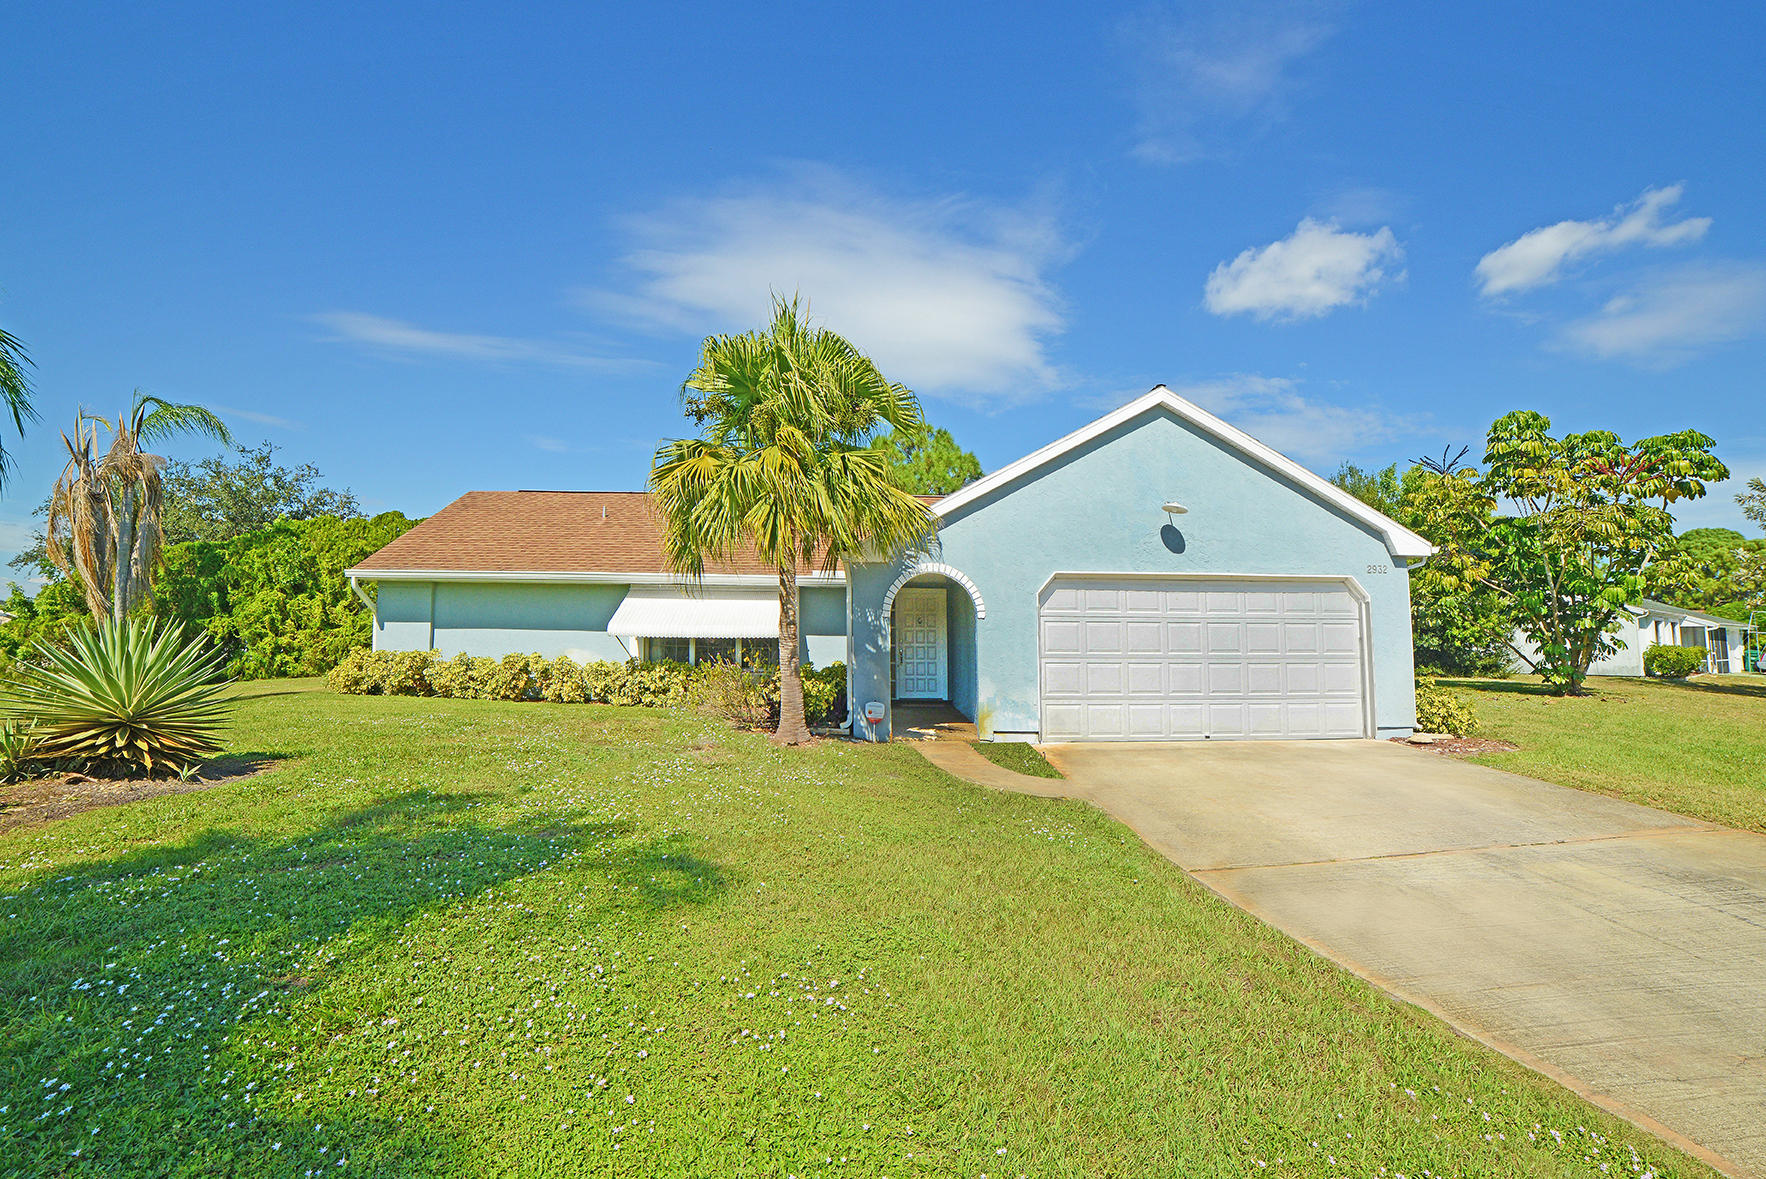 2932 SW Massey Lane 34953 - One of Port Saint Lucie Homes for Sale